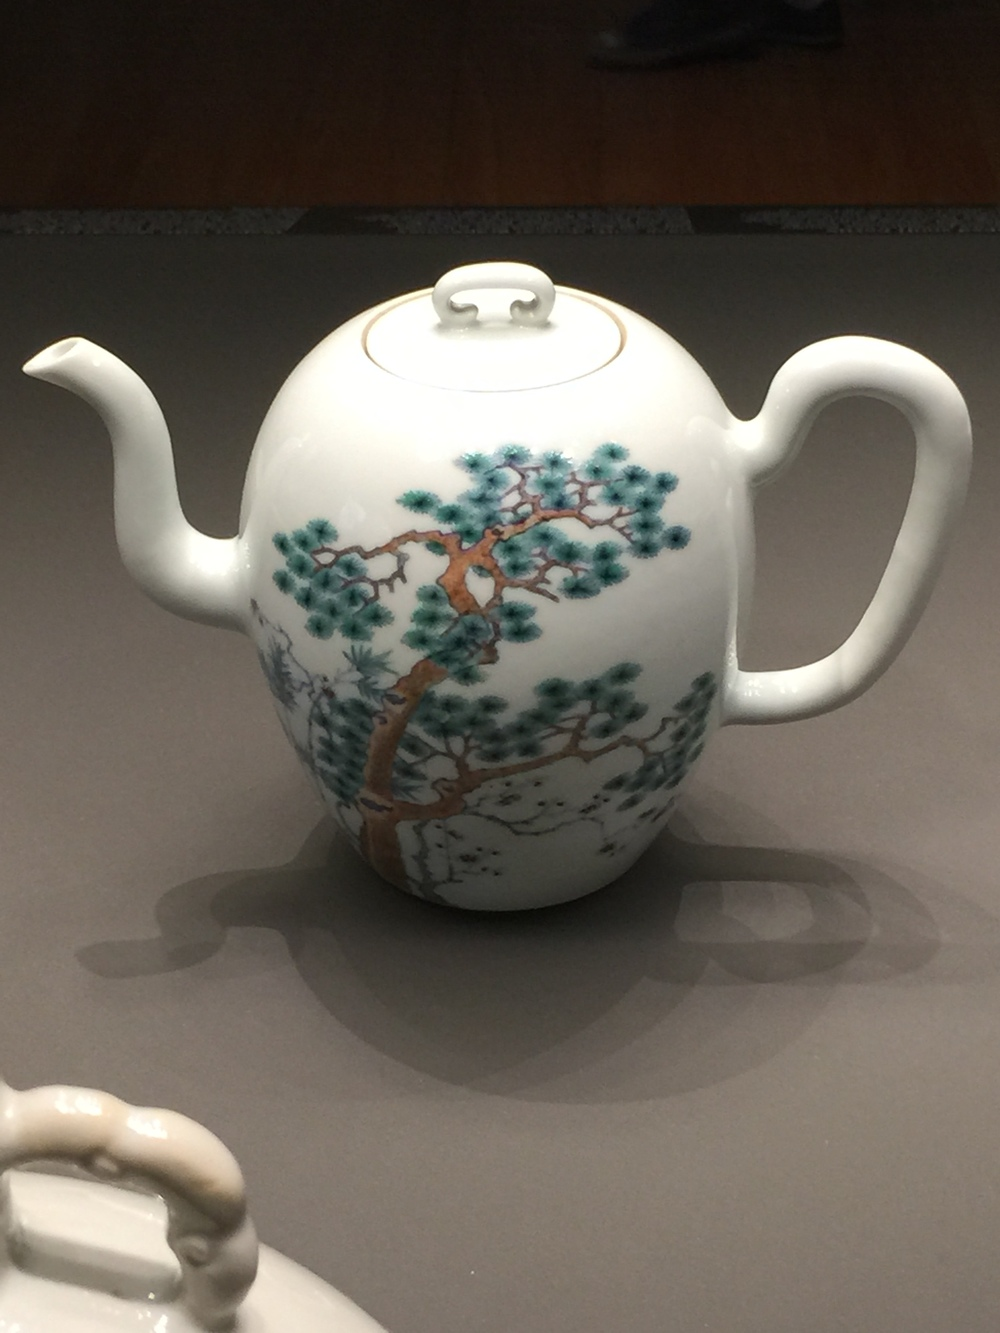 Chinese-Porcelain-British-Museum-Percival-David-jessewaugh.com-120.jpg